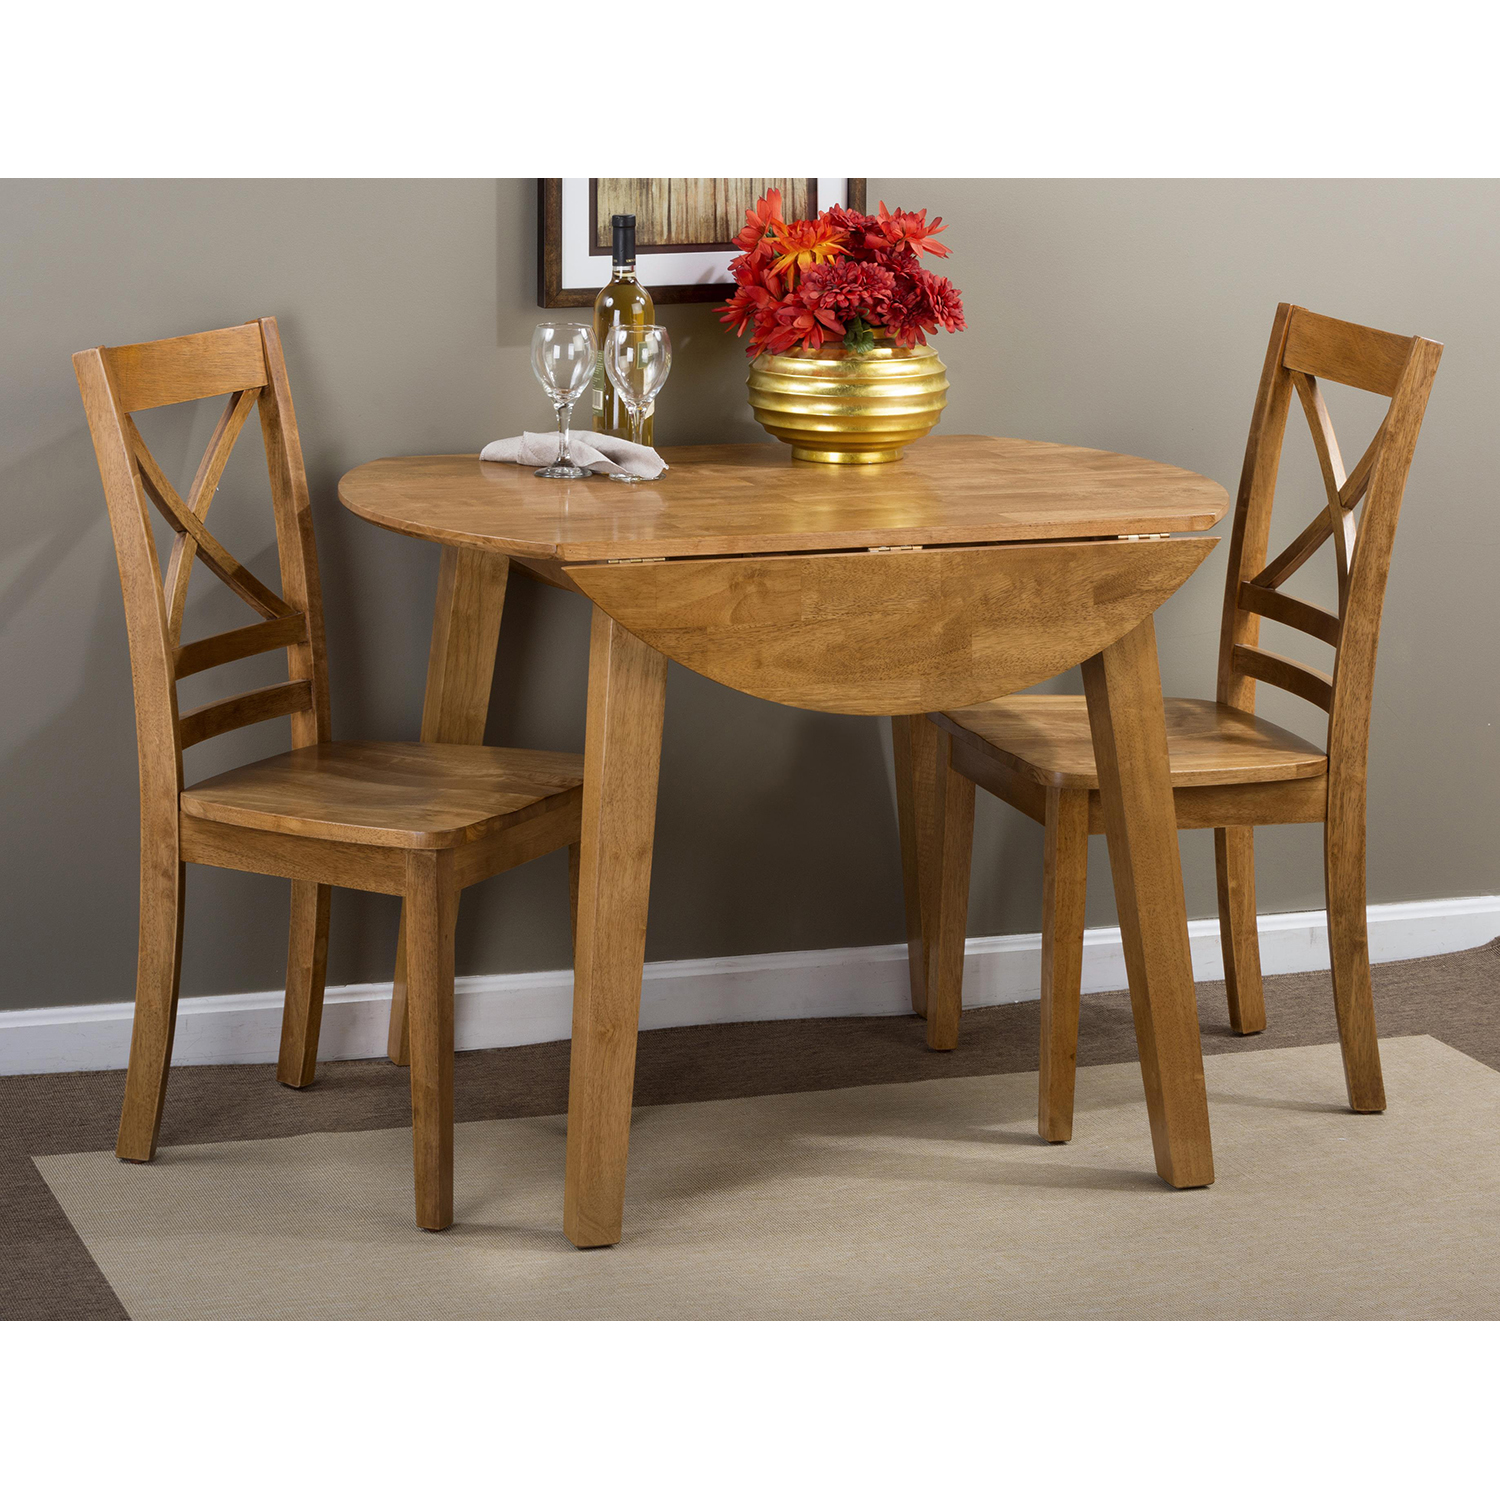 Simplicity 5 Pieces Dining Set - Round Table, X Back Chair, Honey - JOFR-352-28-806KD-SET